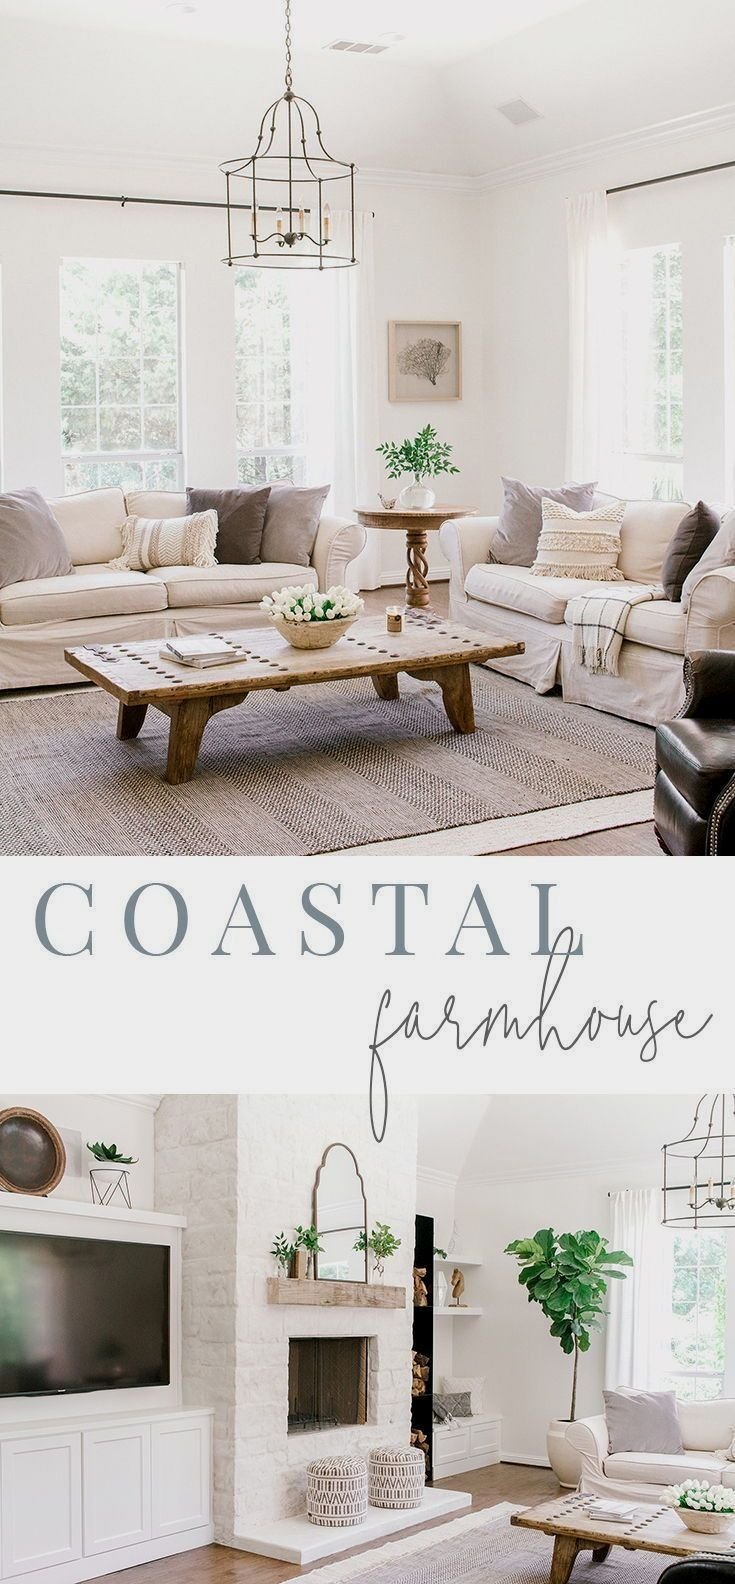 Today we are sharing my mom's latest remodel that we call the . Her living room is what we like to call coastal farmhouse.